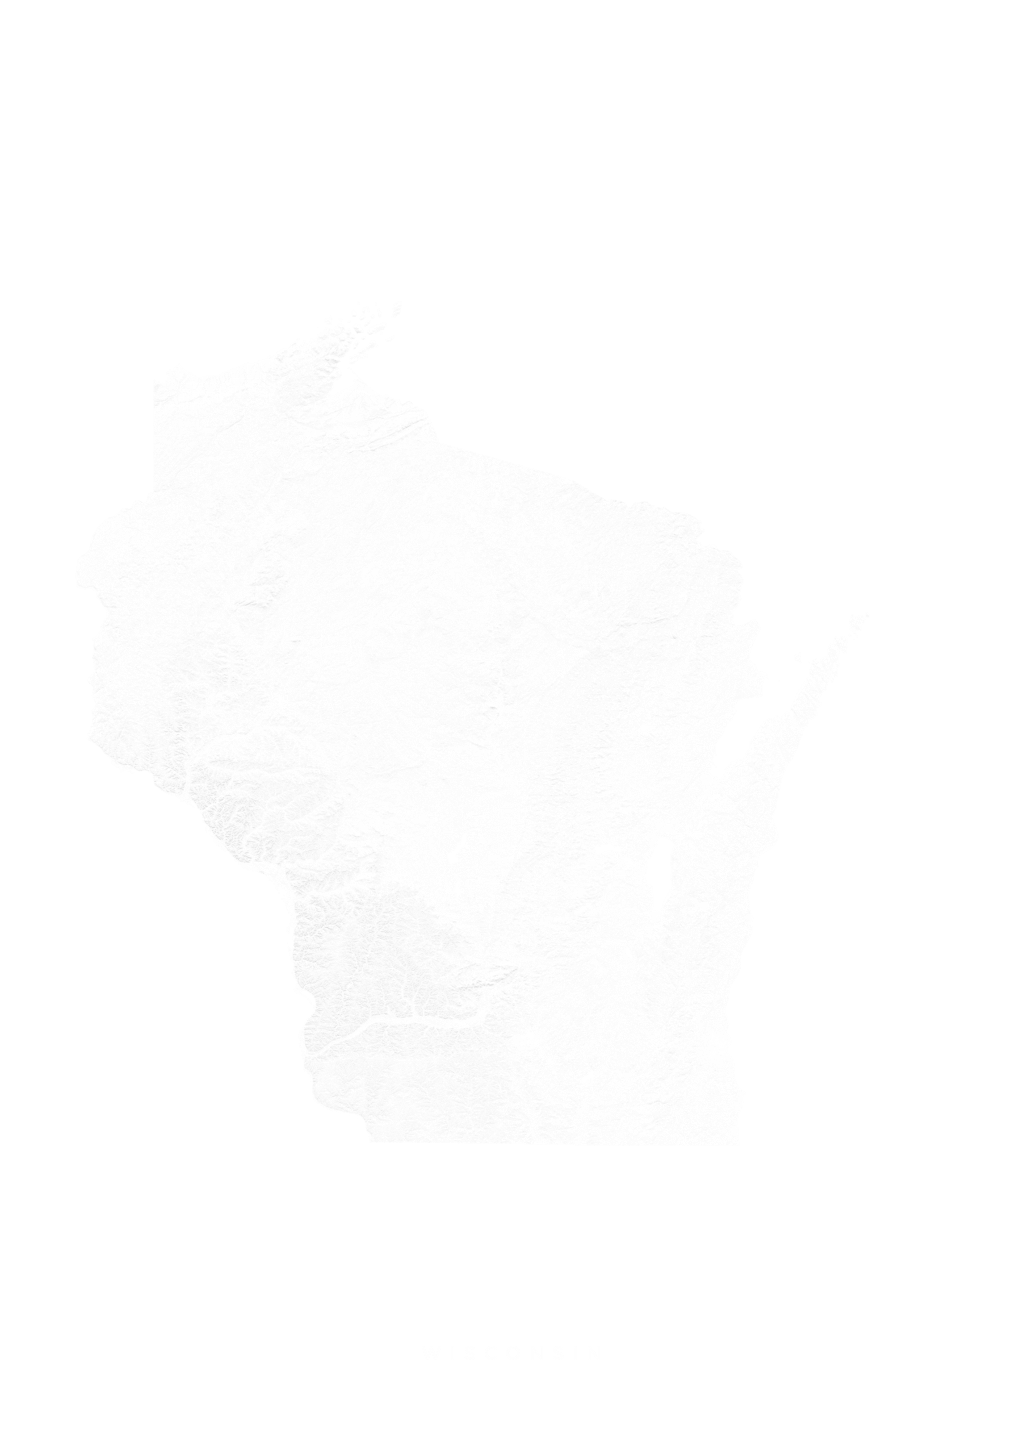 Wisconsin wall map